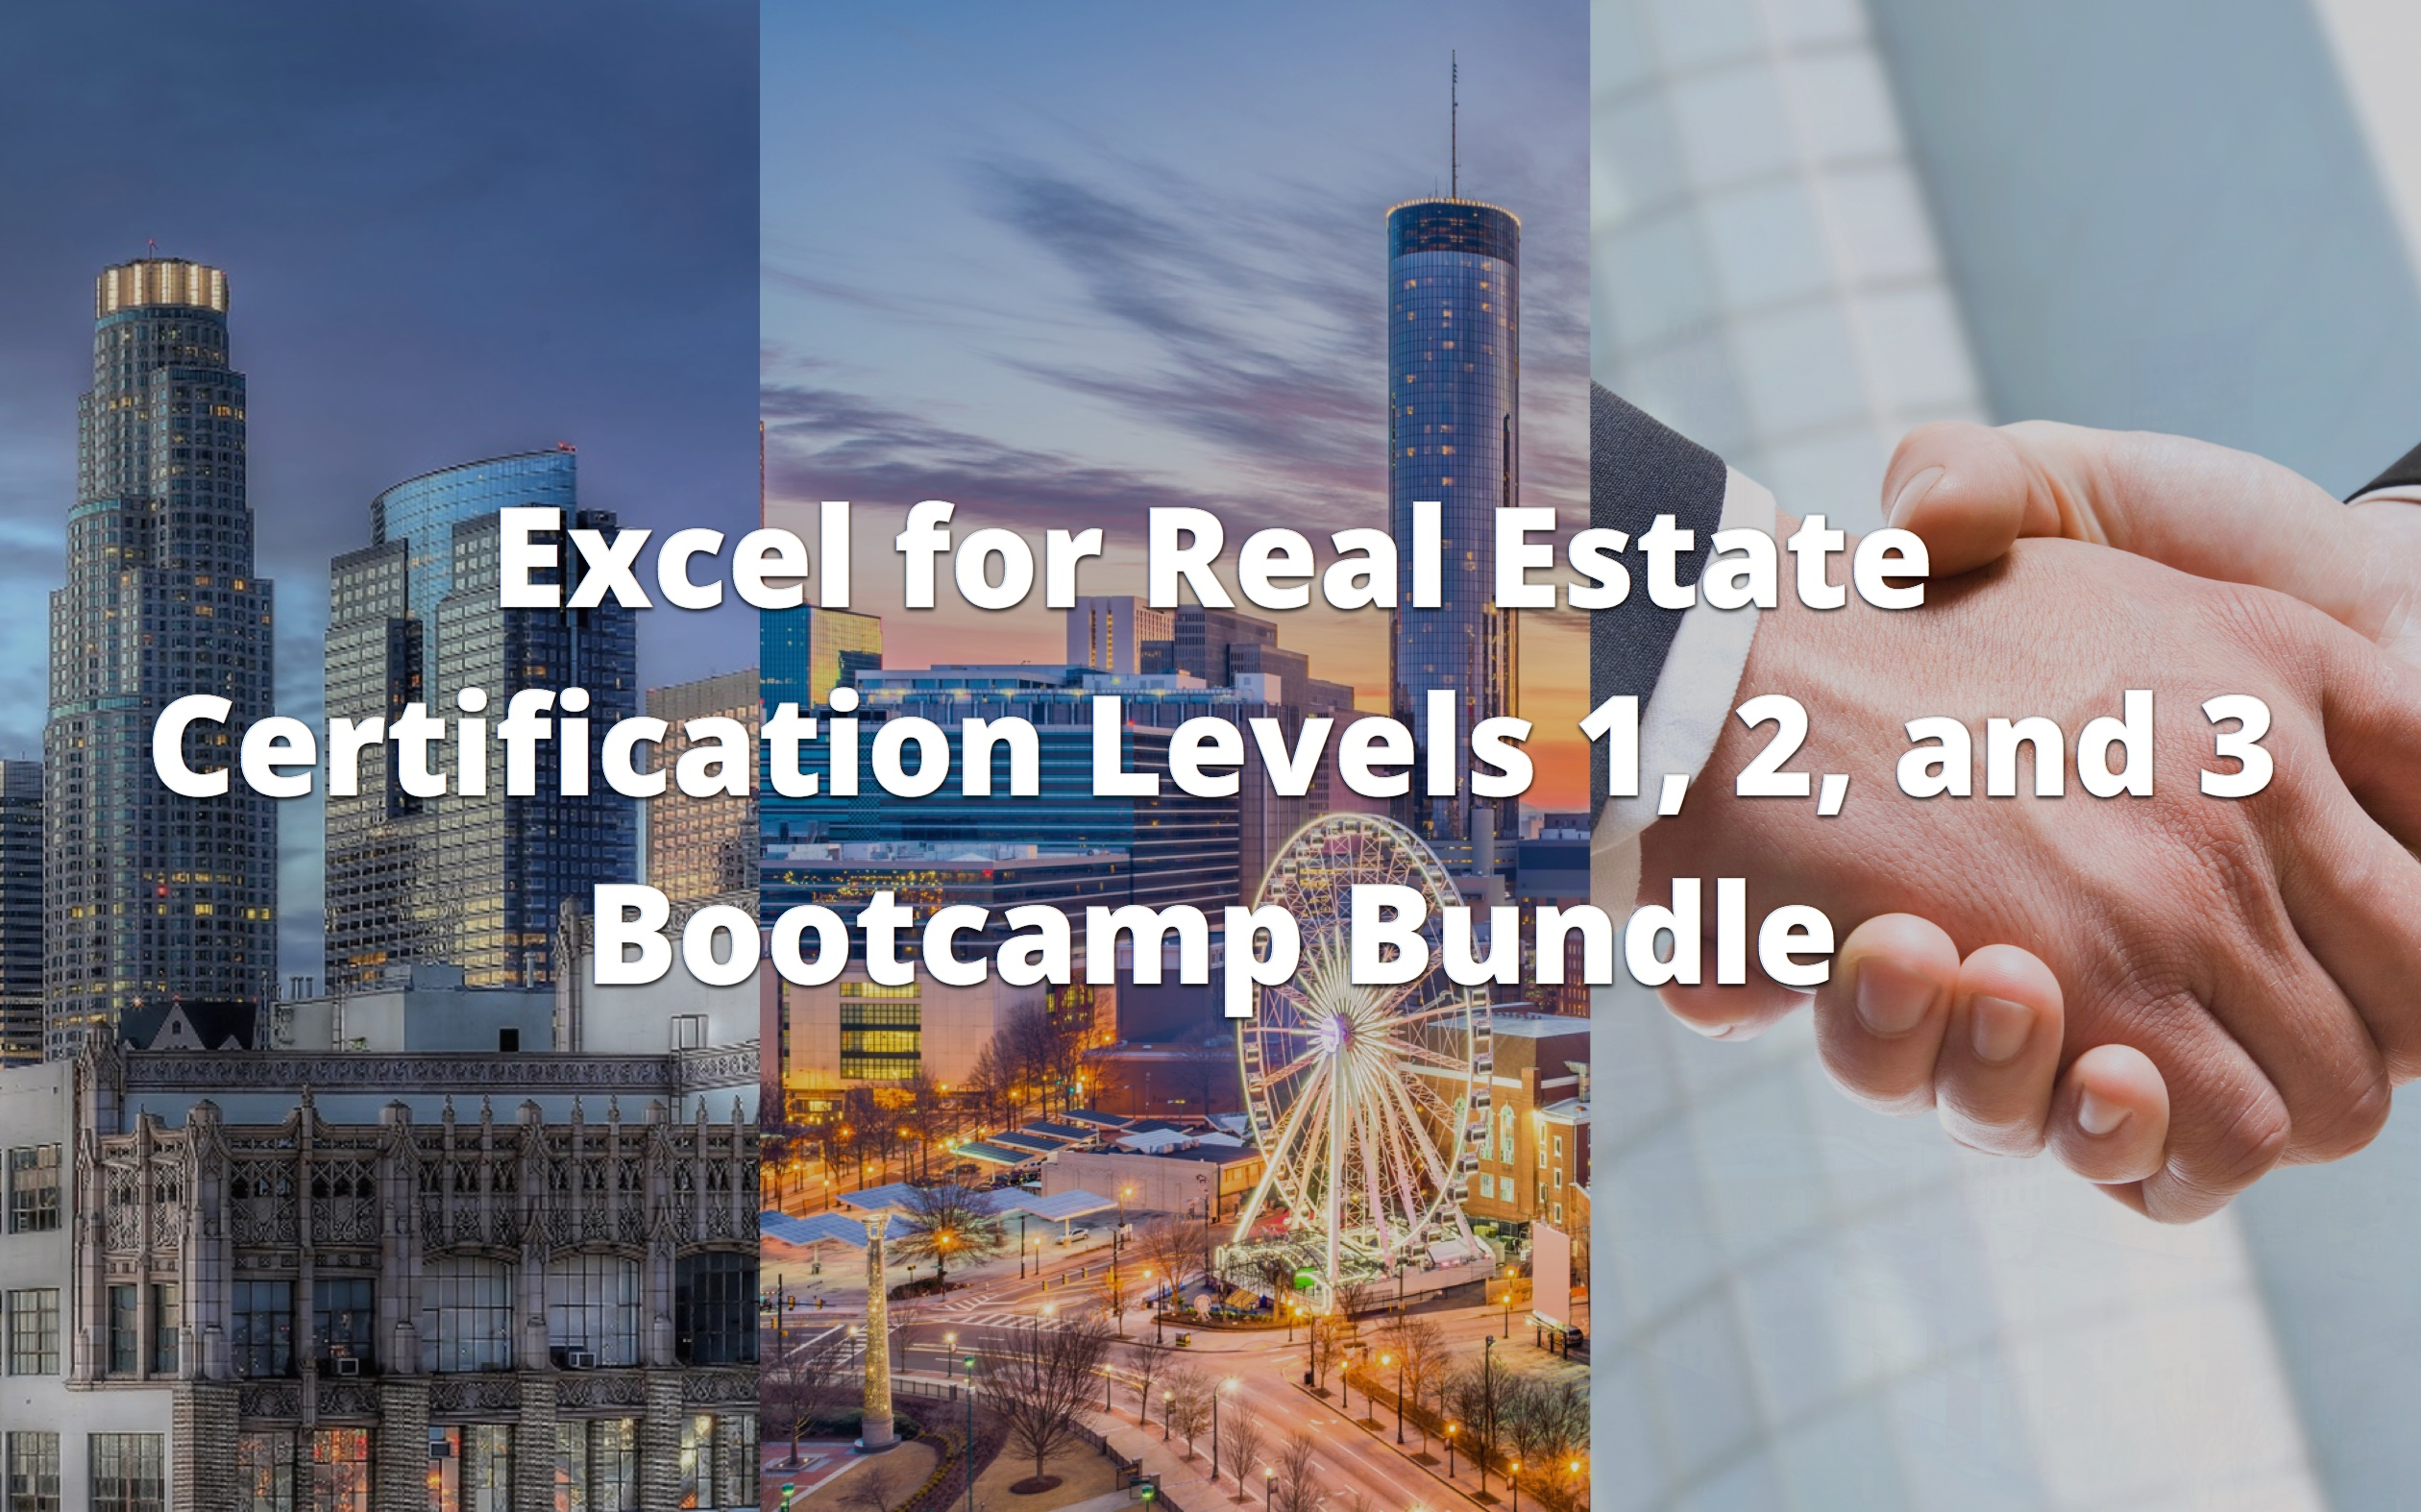 Excel for Real Estate Certification Levels 1, 2, and 3 Bootcamp Bundle